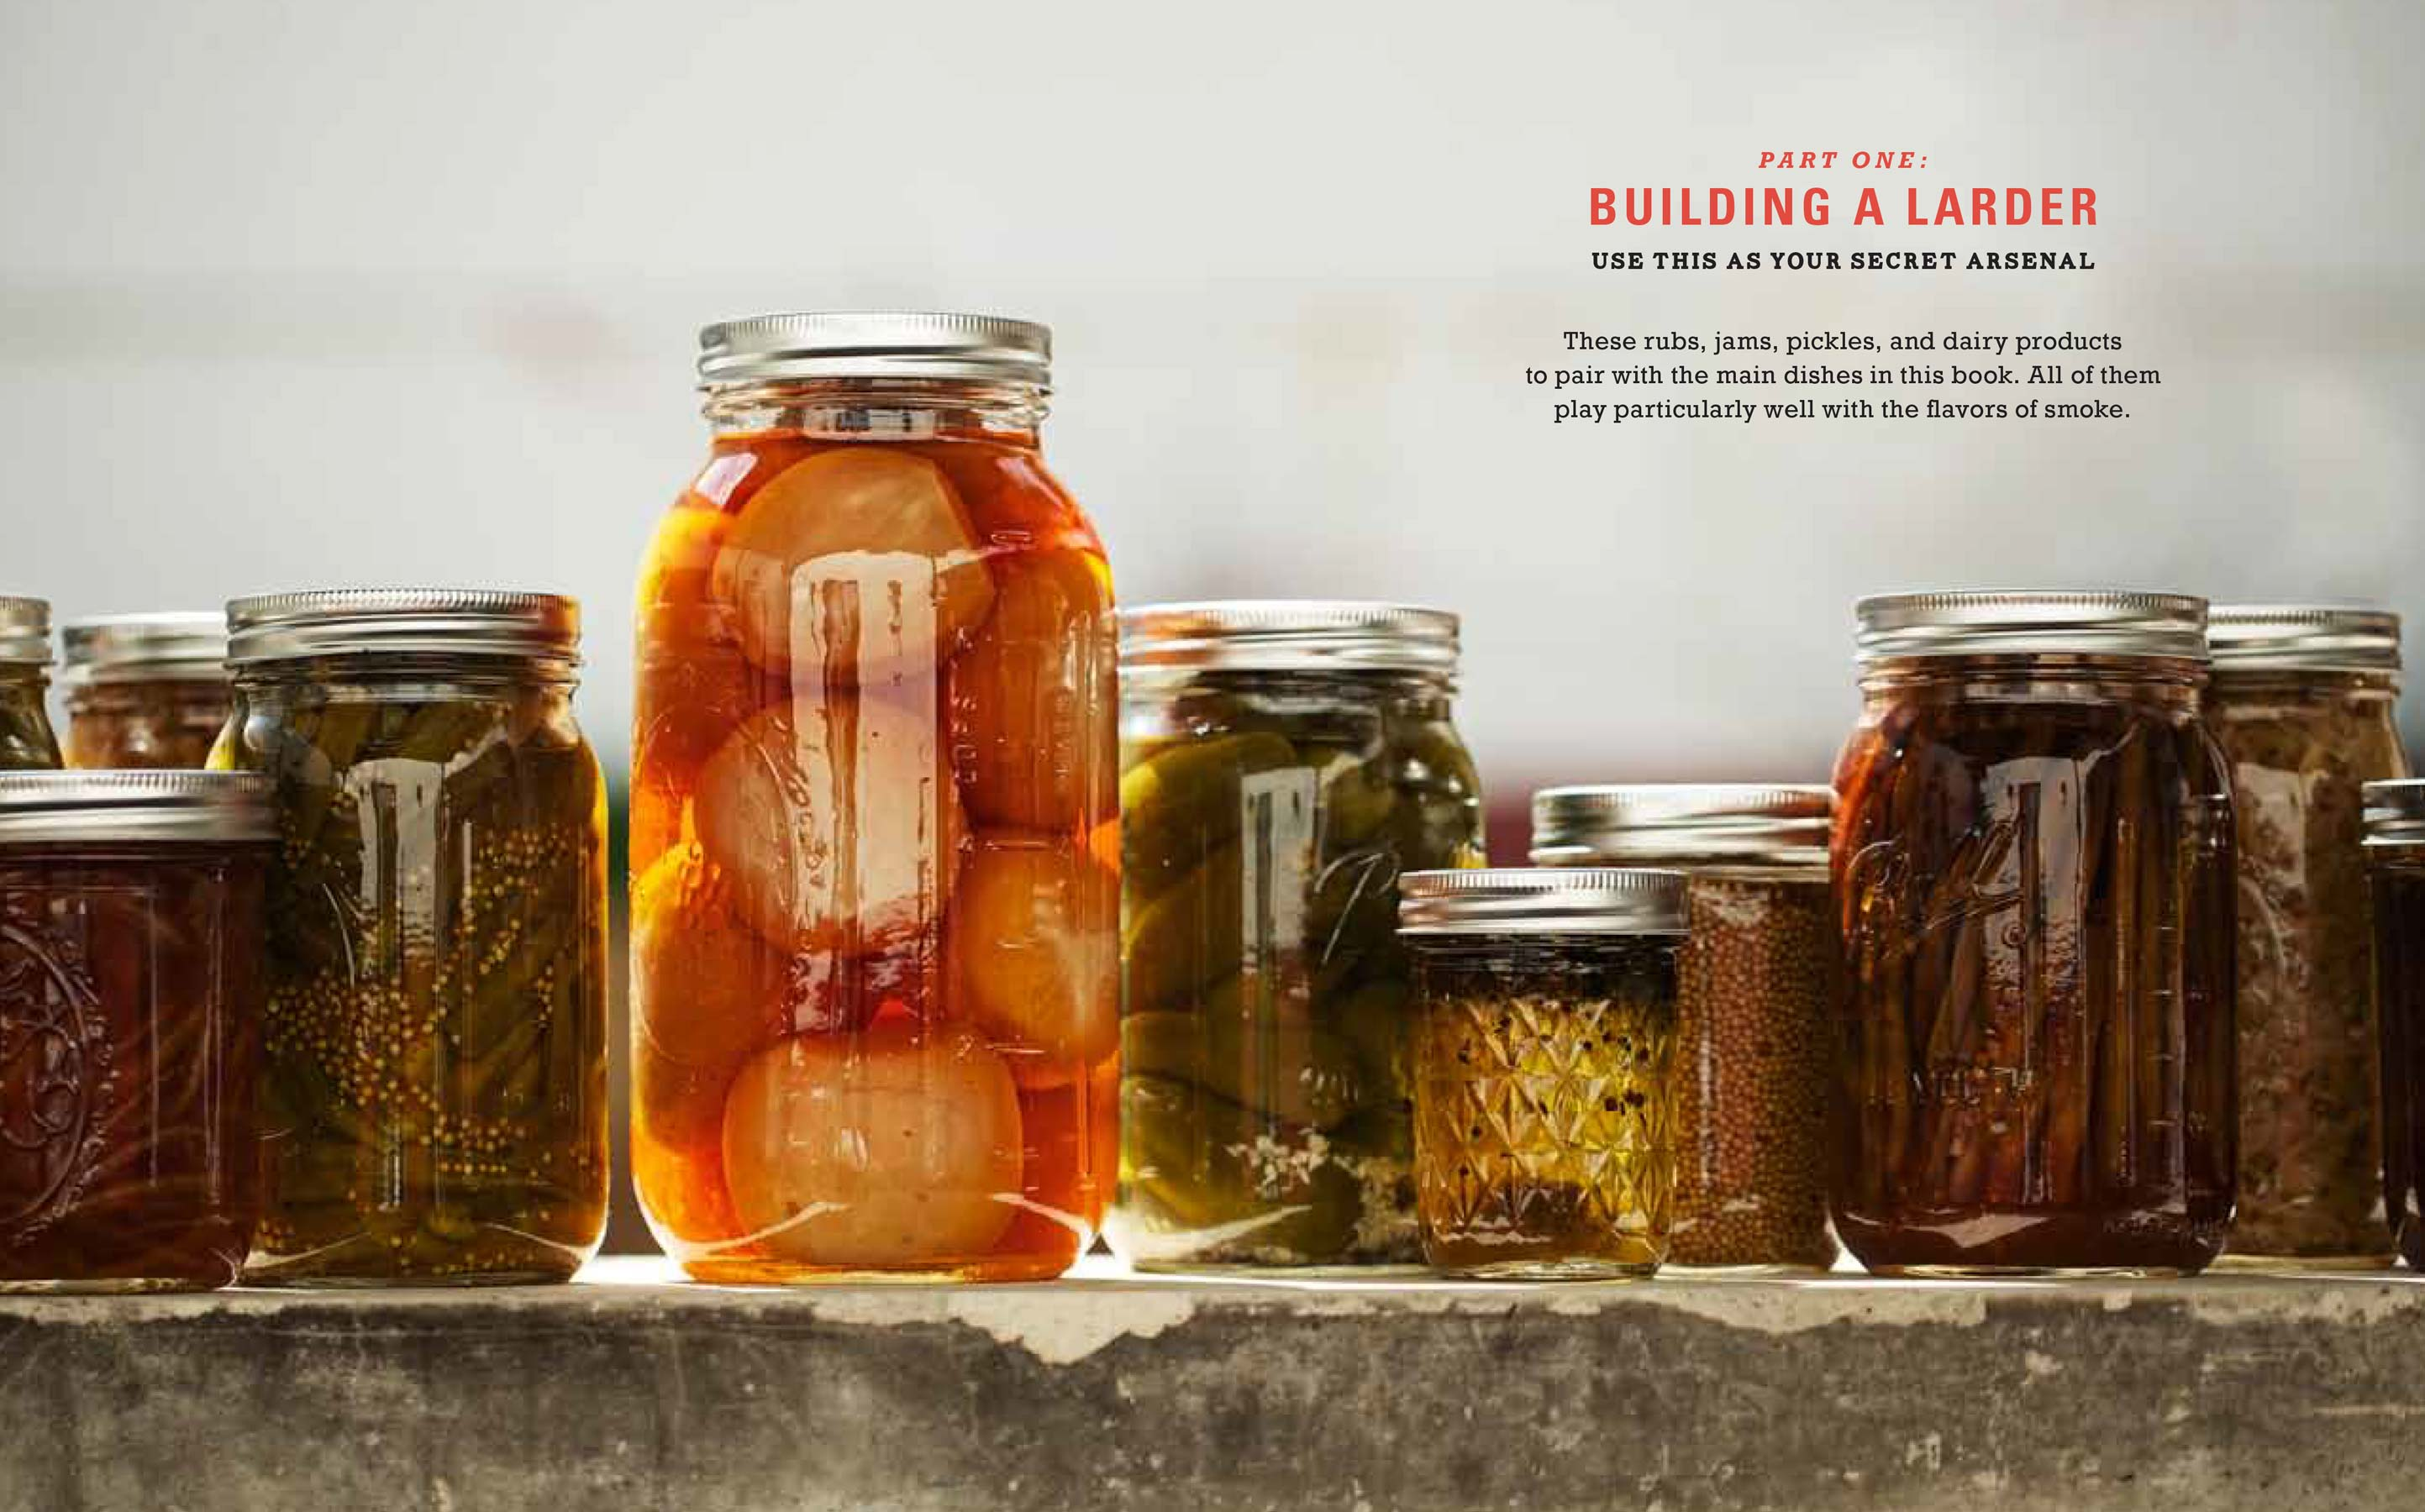 Jody Horton Photography - Various jars of pickles, jams, and rubs used by Chef Tim Byers.